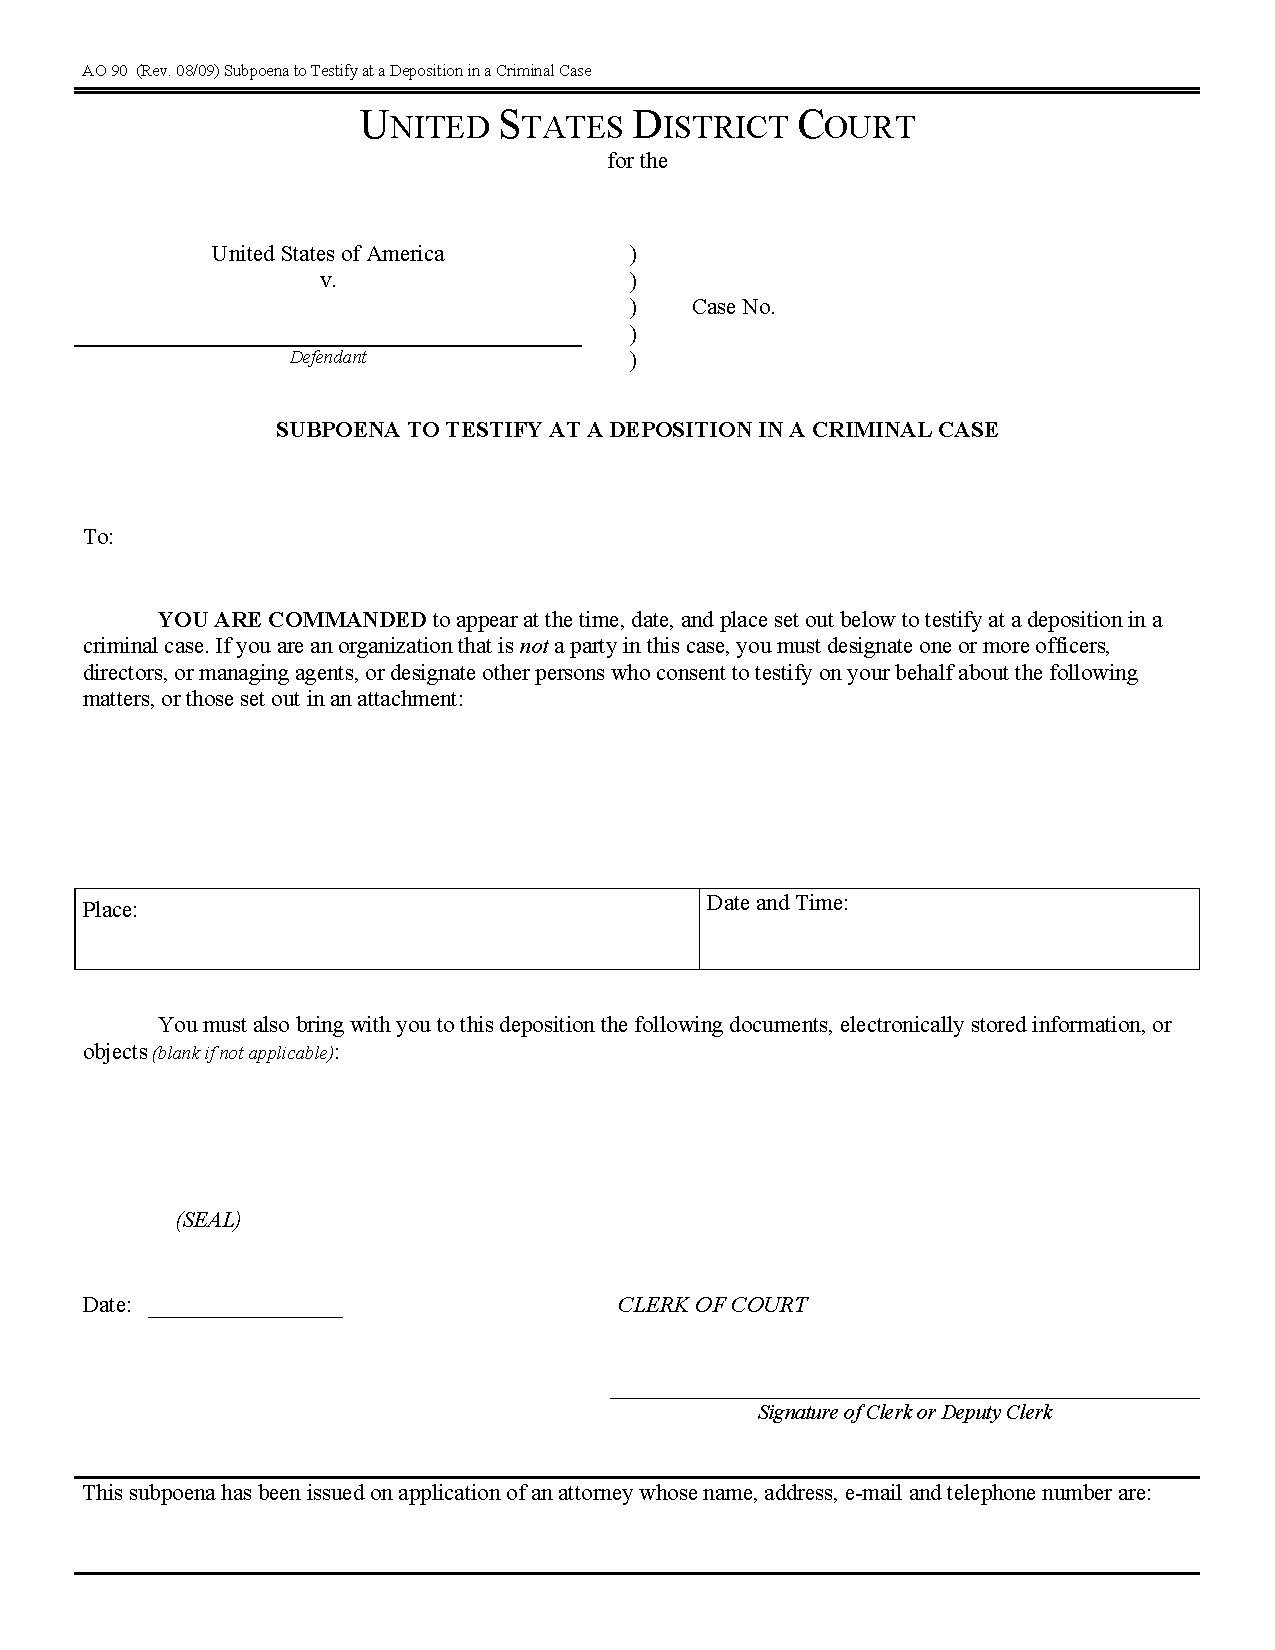 Form Ao 090 Subpoena To Testify At A Deposition In A Pertaining To Court Date By Defendant Name